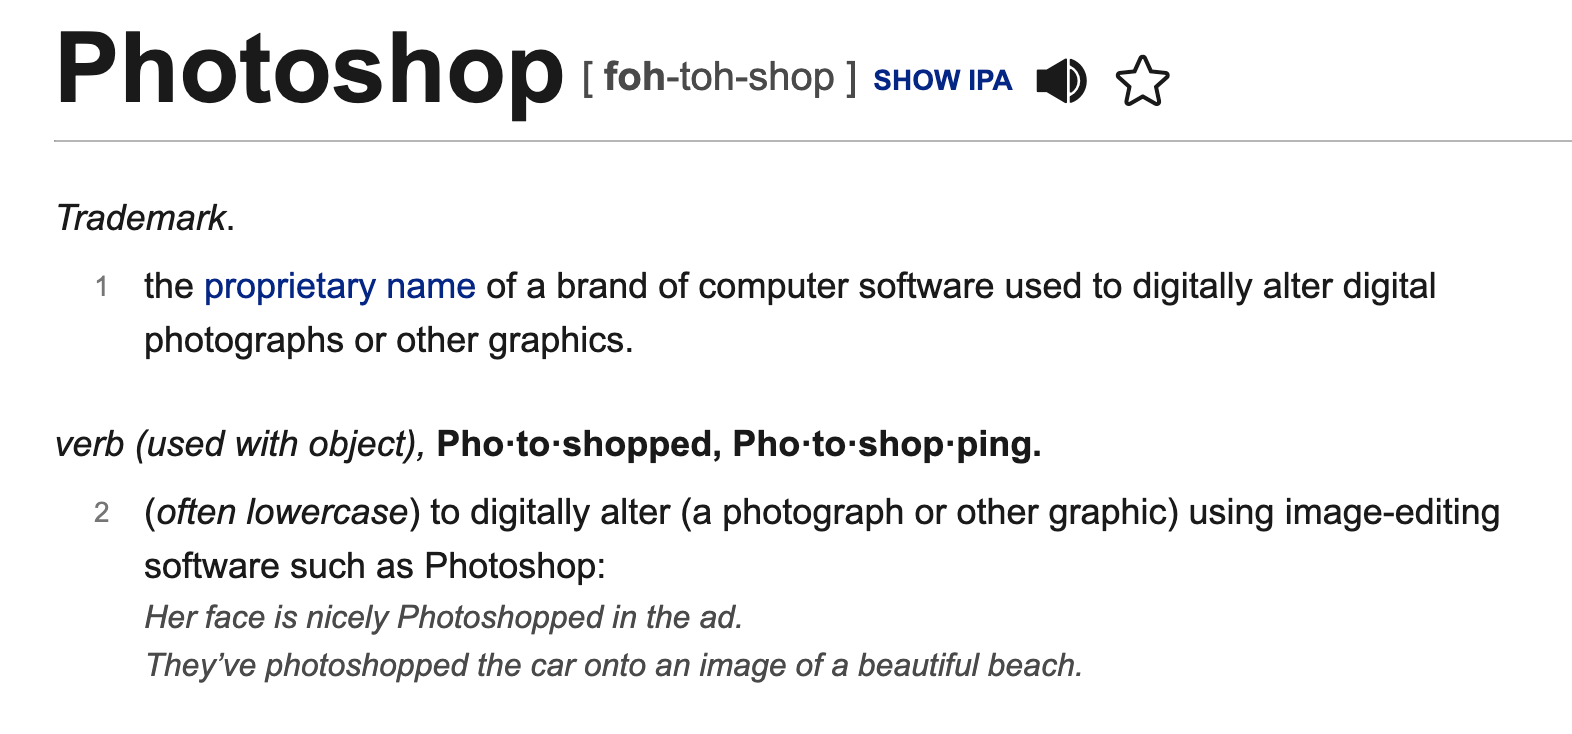 Photoshop. Once a simple trademark is now so widely used that it's become a verb in the English language.